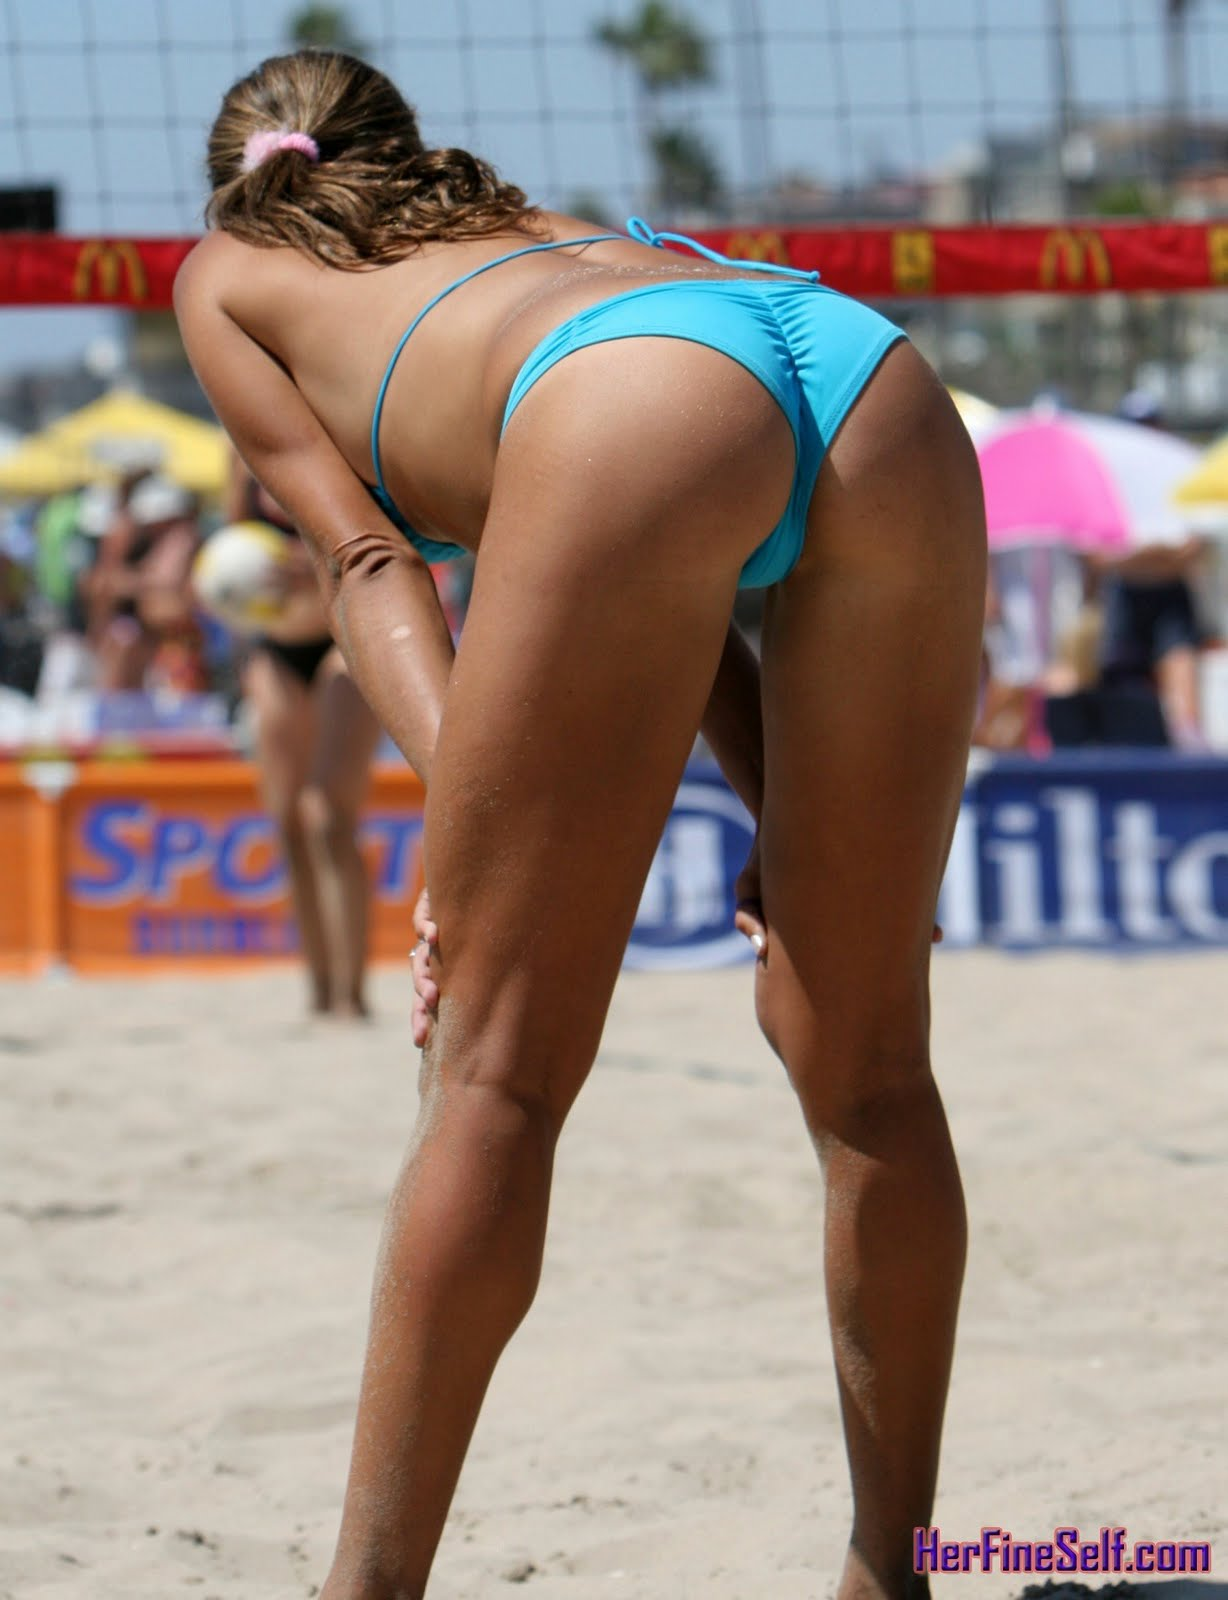 Pity, volleyball beach girl pussy slip are not